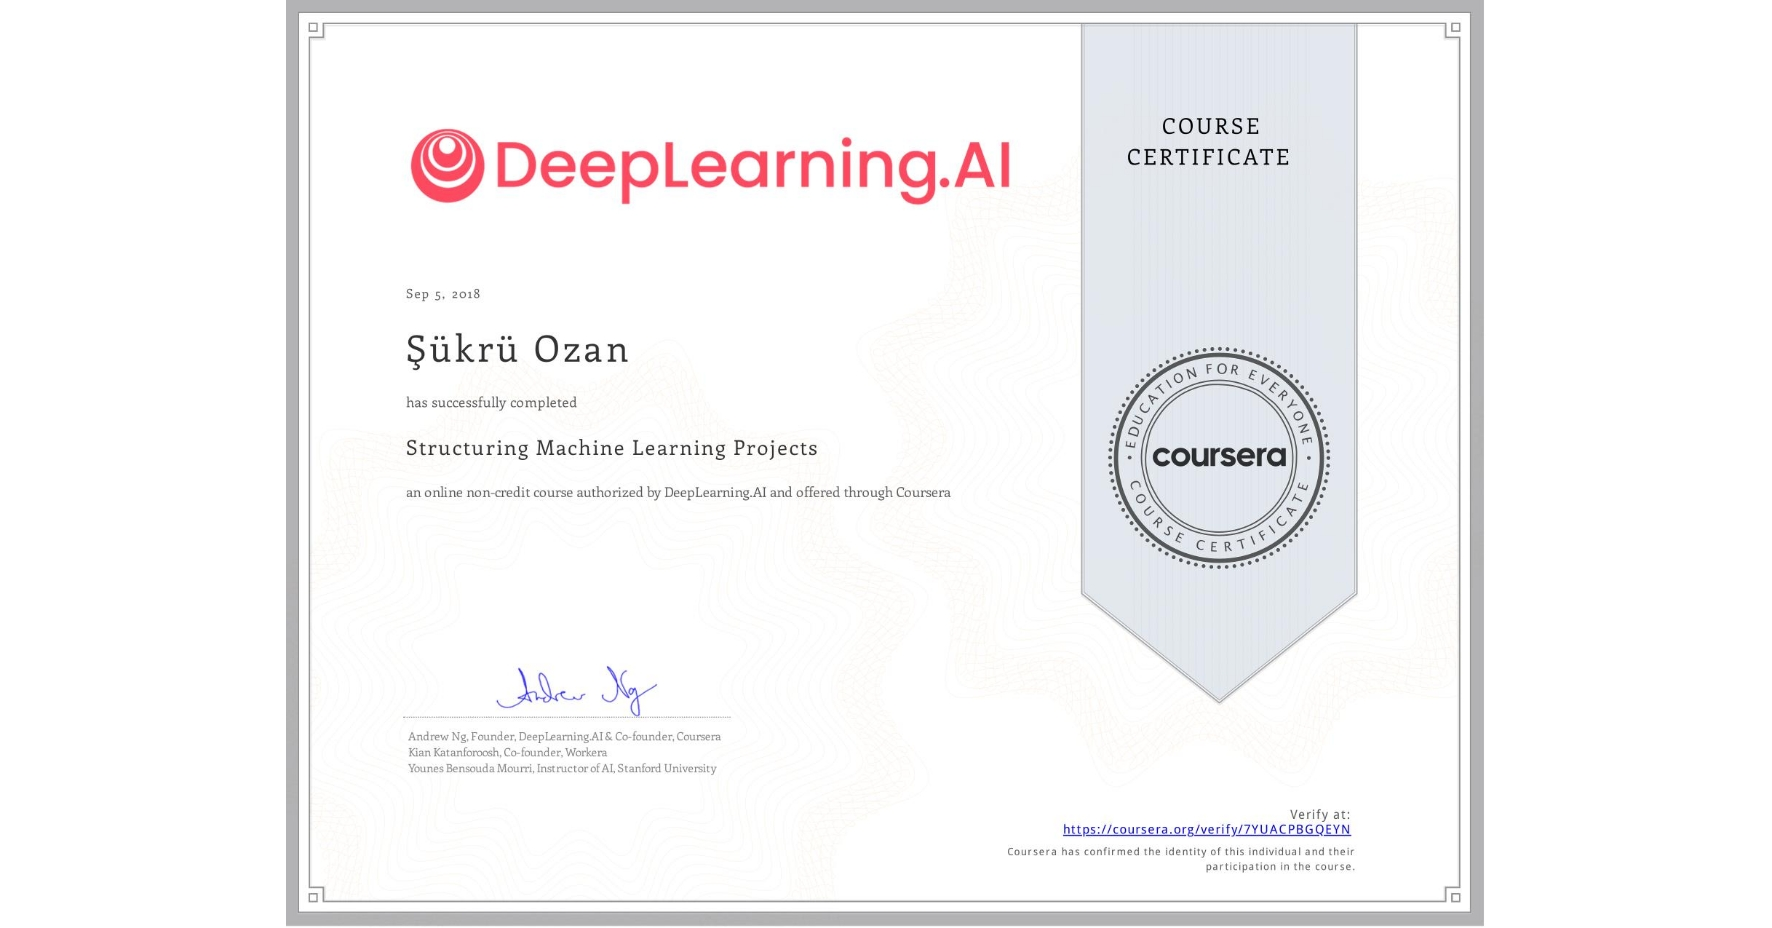 View certificate for Şükrü Ozan, Structuring Machine Learning Projects, an online non-credit course authorized by DeepLearning.AI and offered through Coursera